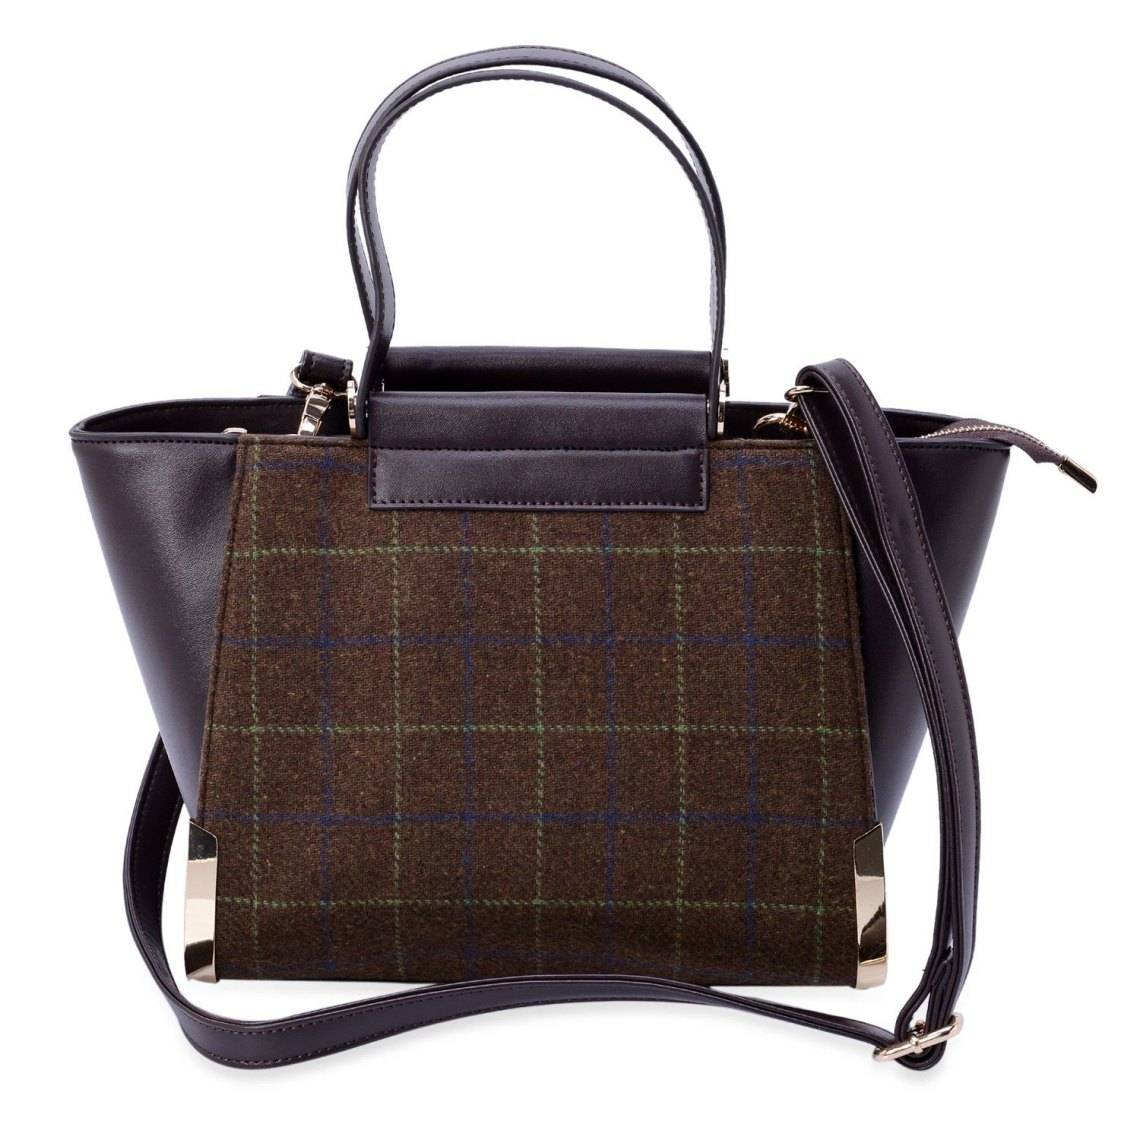 J Francis - Dark Brown Faux Leather and Fabric Tote Bag